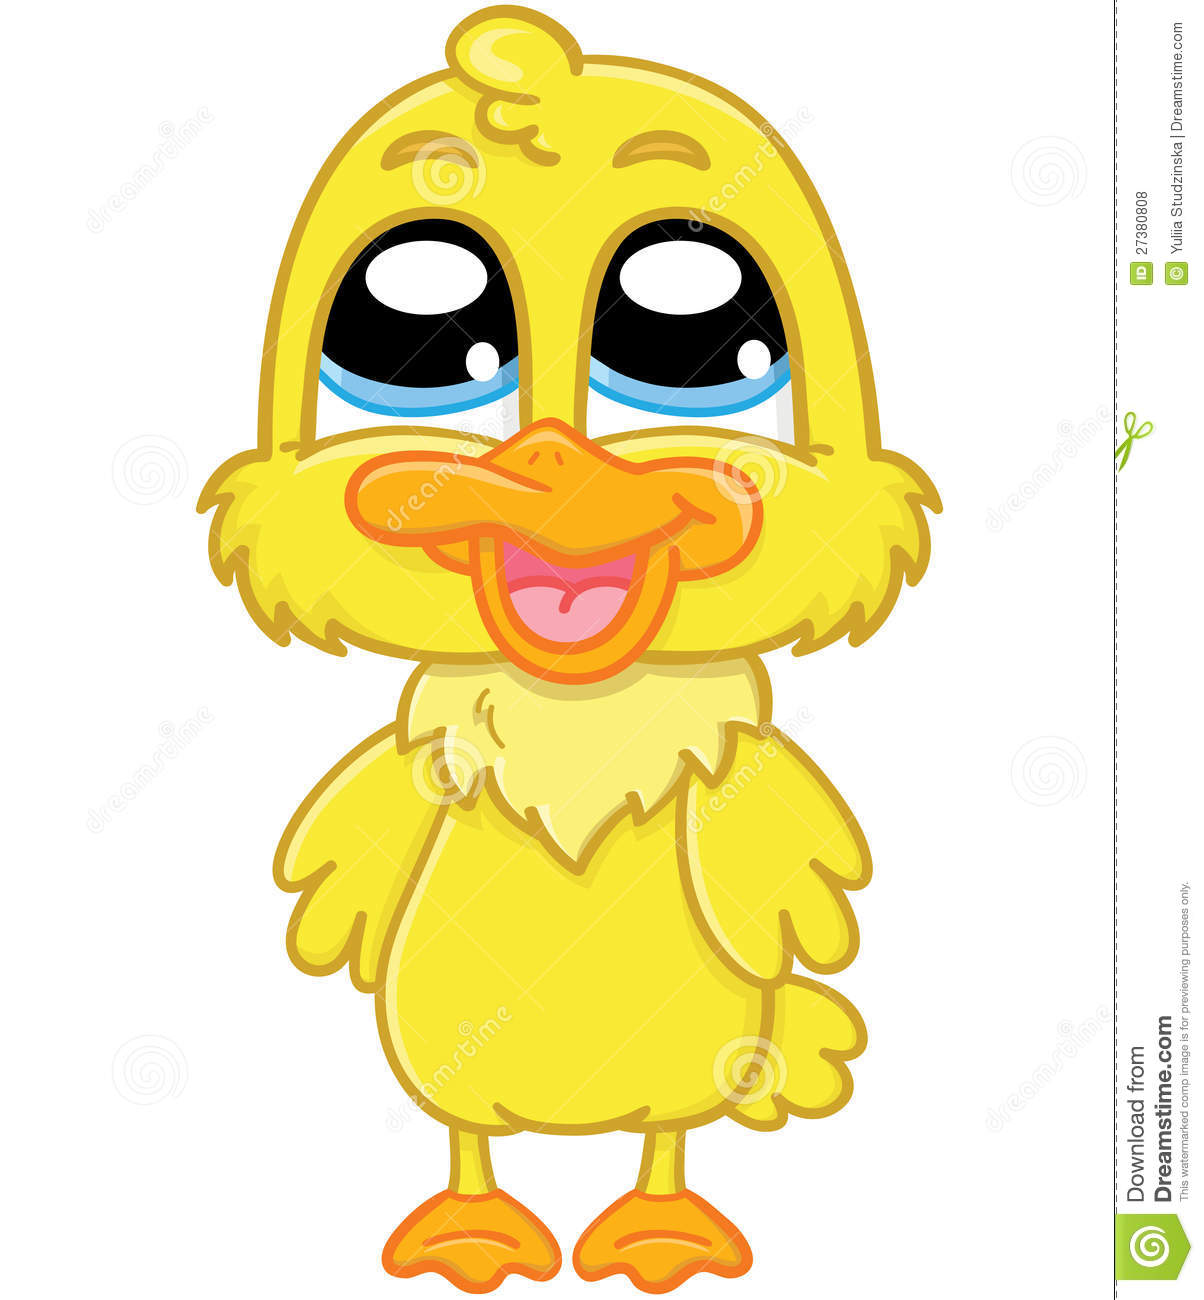 Cute cartoon duckling stock vector. Image of vector, duck ...